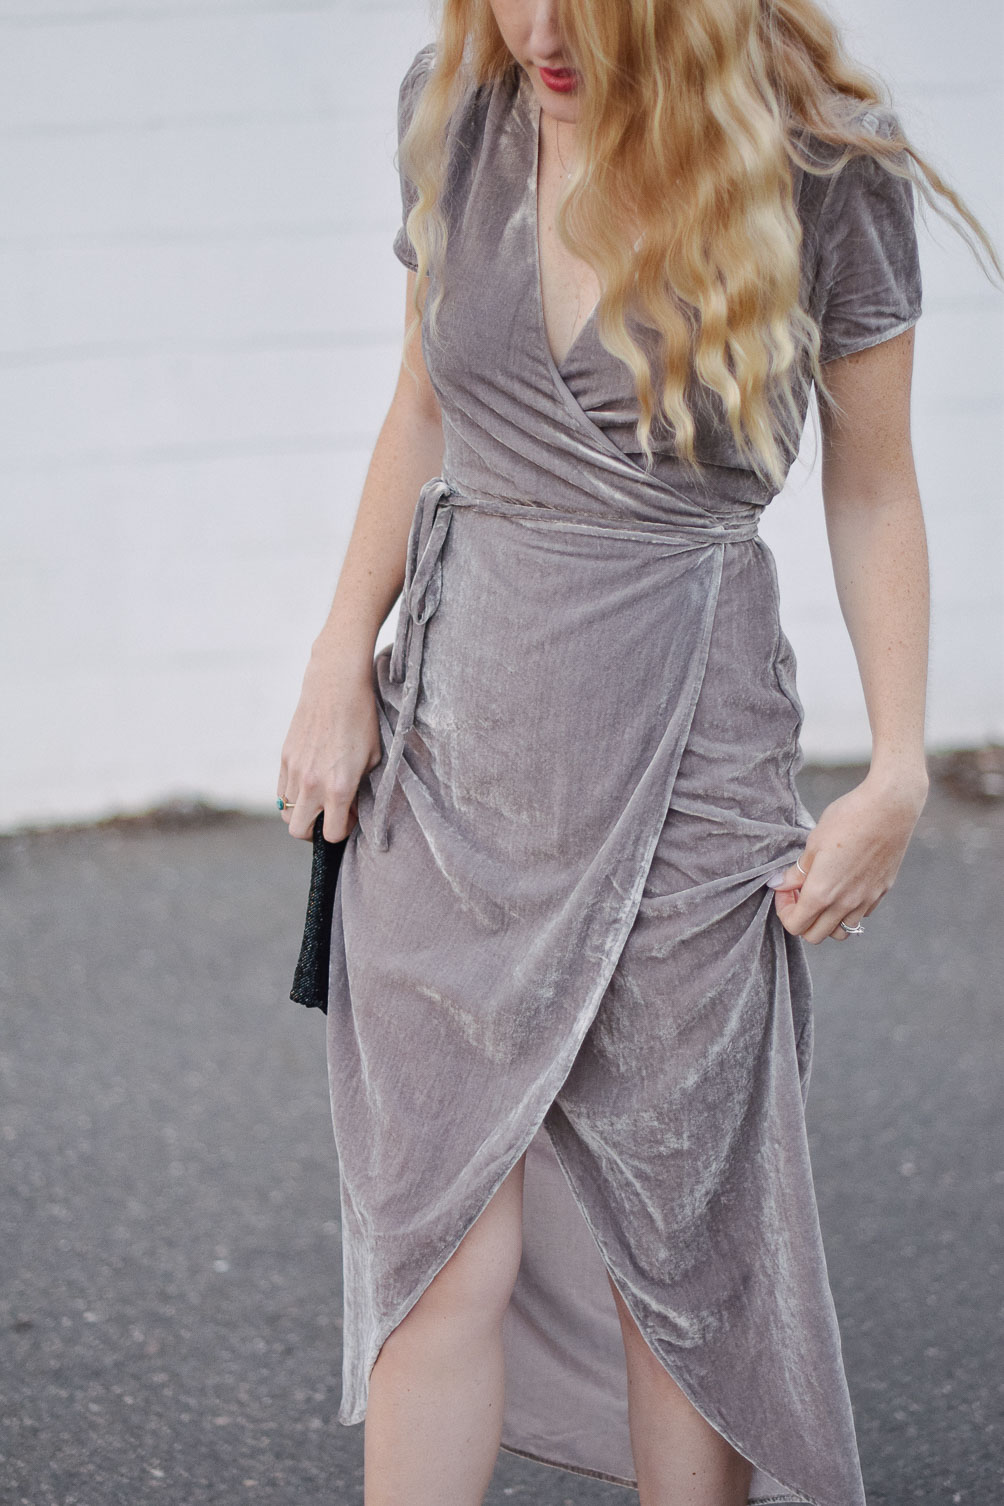 styling a metallic holiday dress party outfit with a beaded clutch